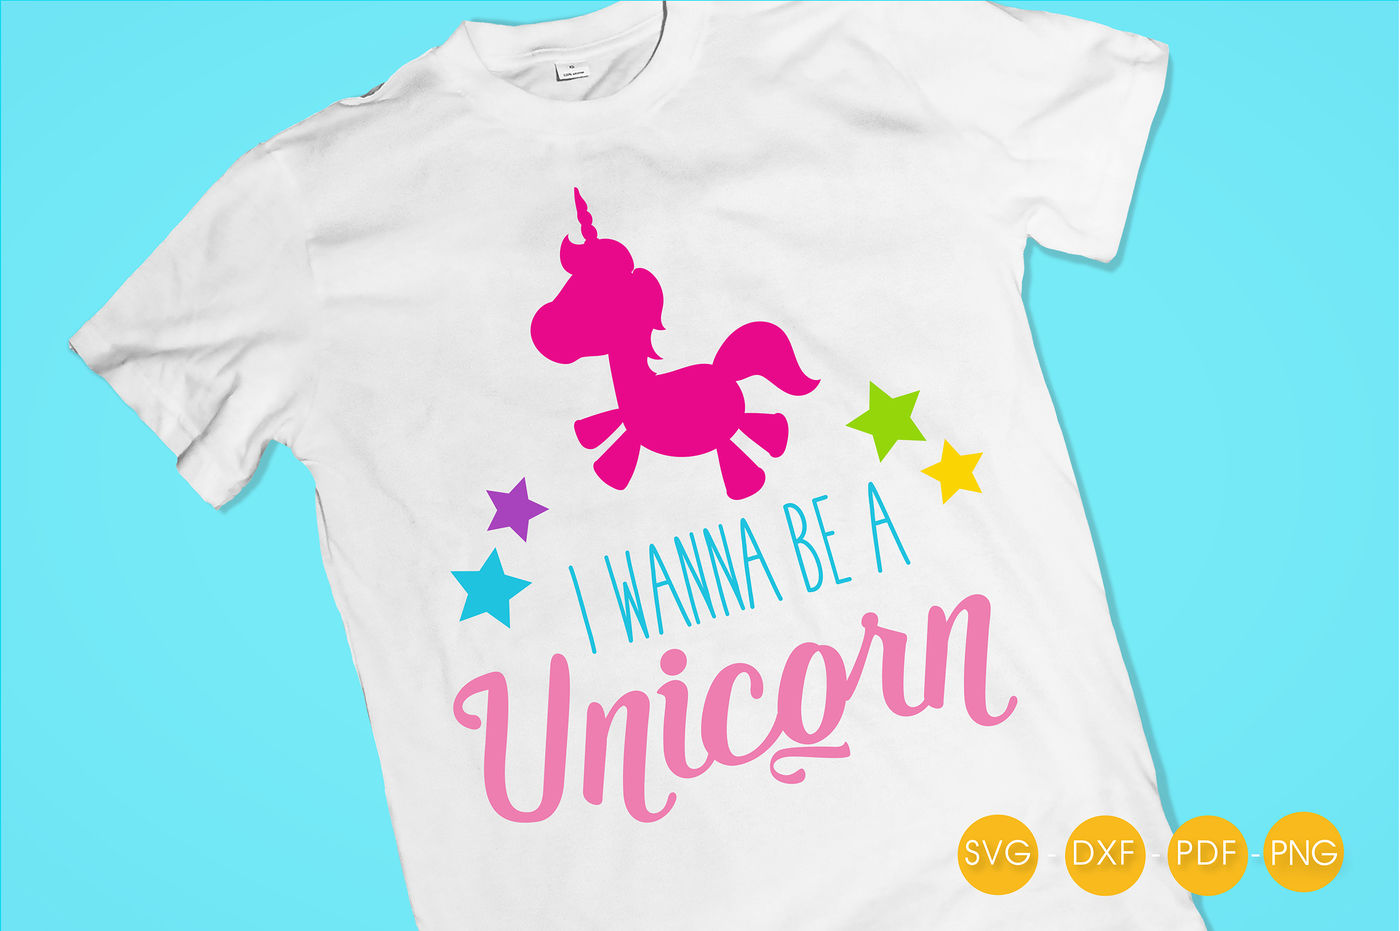 c3ba49f14769 I wanna be a unicorn SVG, PNG, EPS, DXF, cut file By PrettyCuttables ...